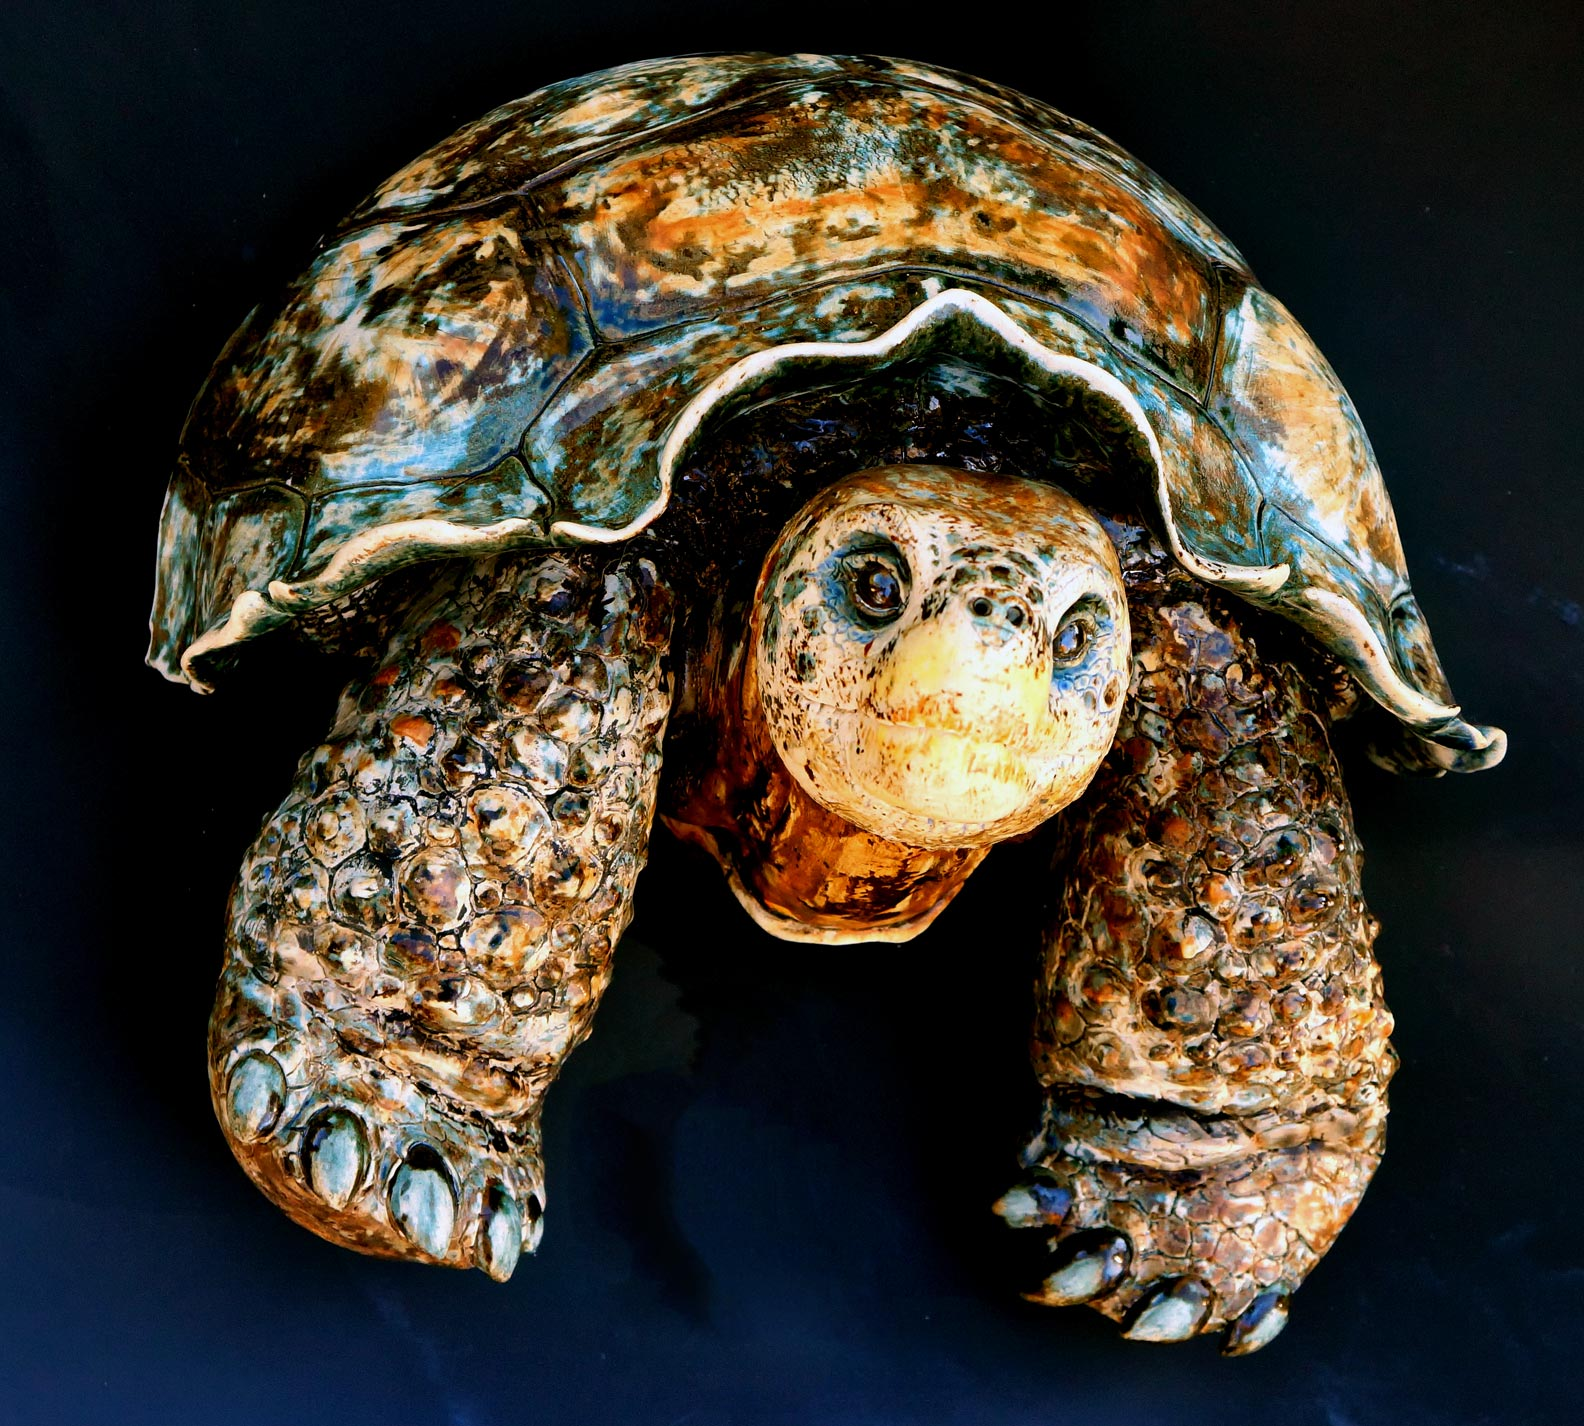 Wall Hanging Galapagos Tortoise, 16 inches wide.